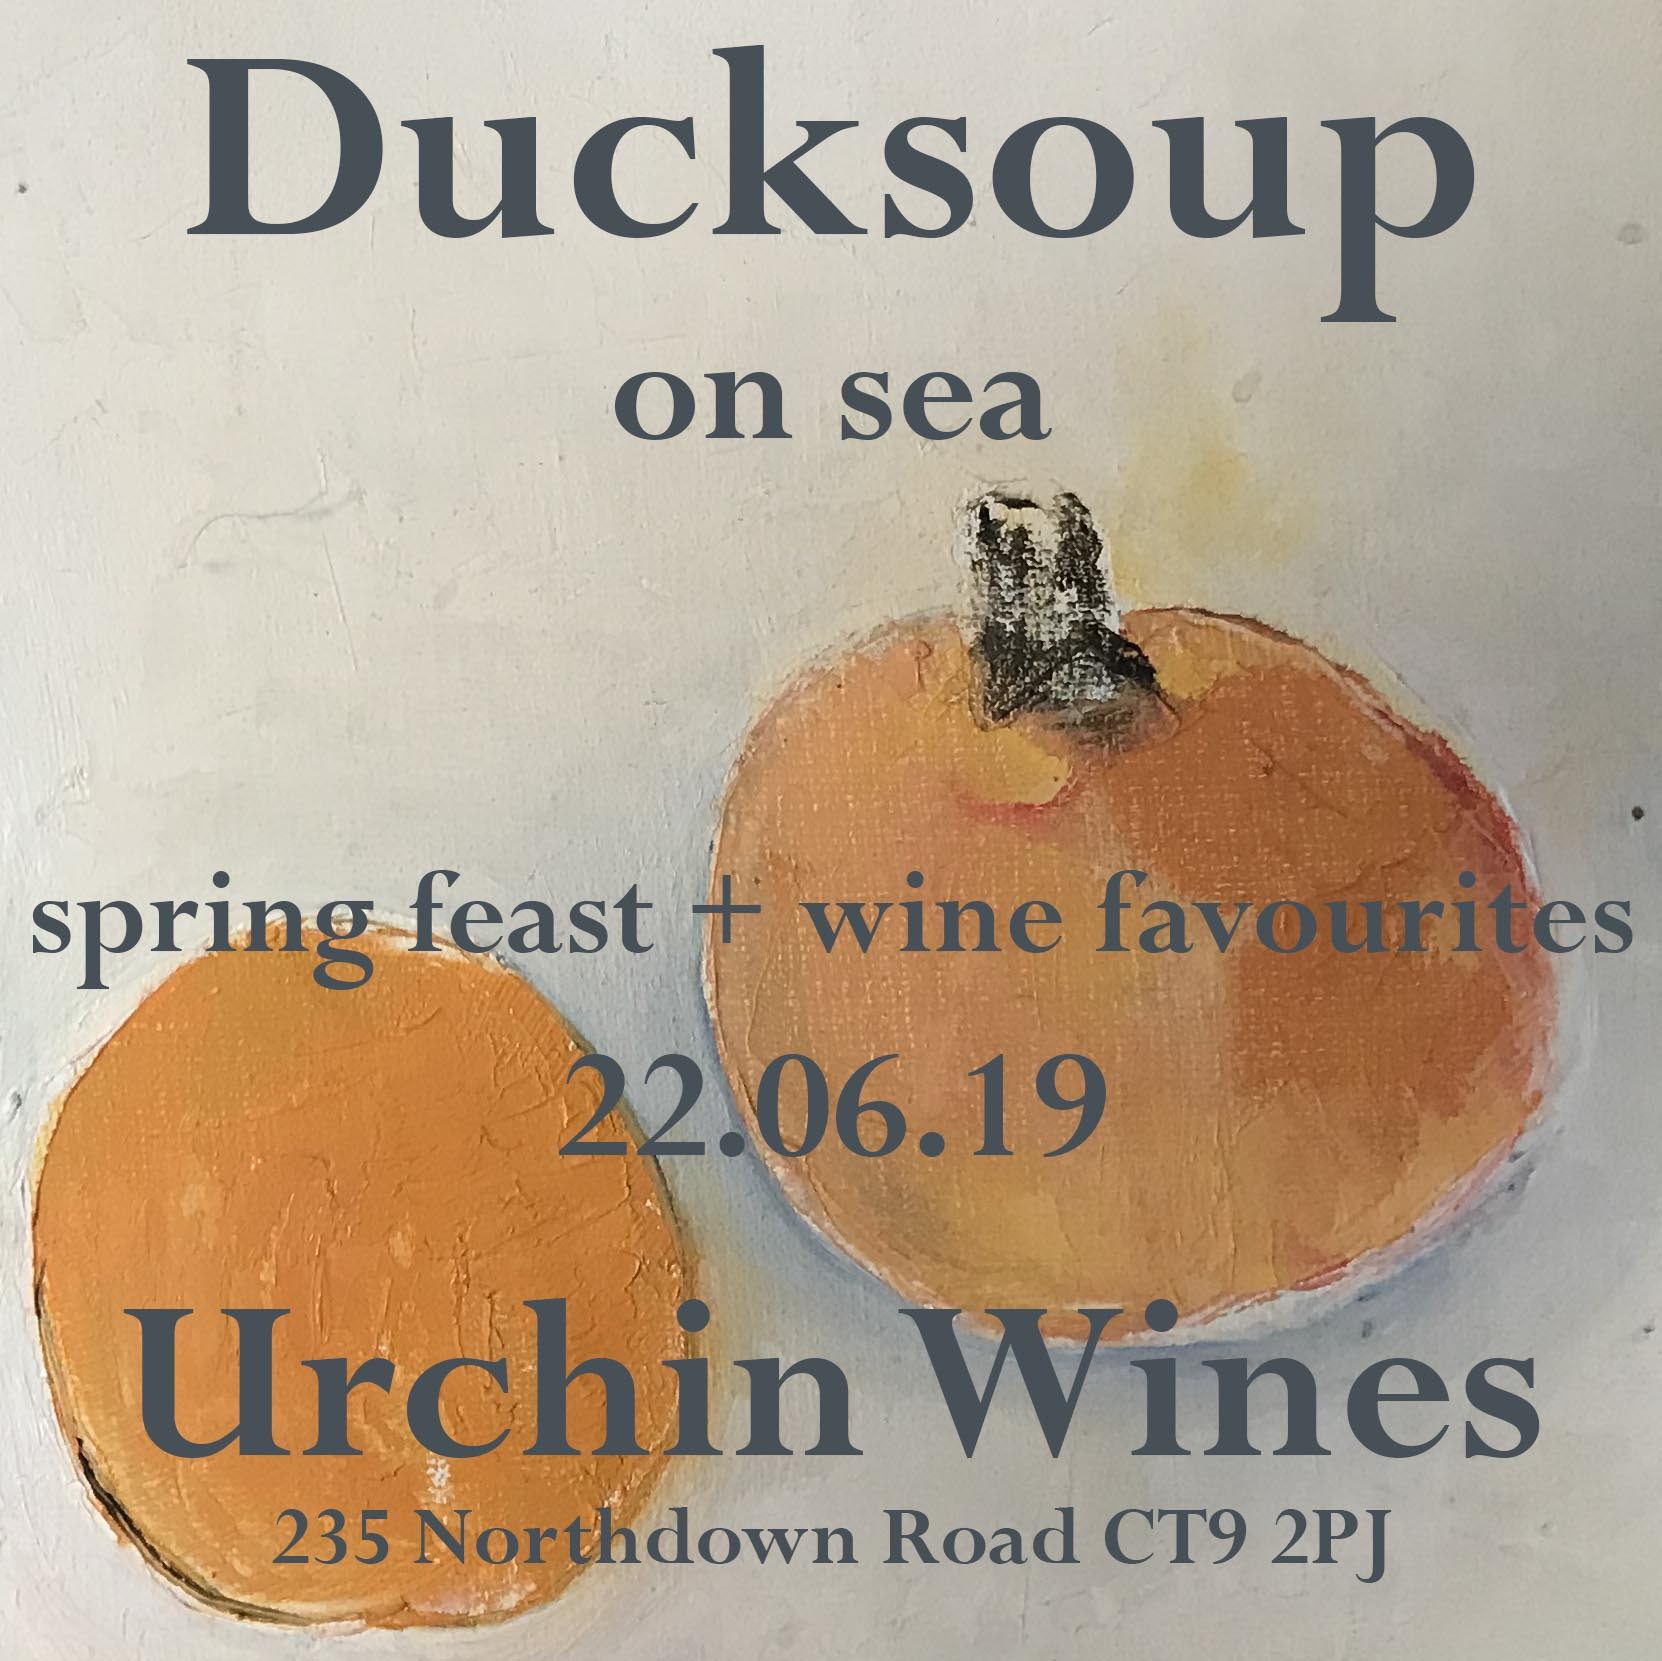 Ducksoup on Sea - 22nd June 2019We are so very pleased to welcome Clare Lattin and Tom Hill from Duck Soup and The Little Duck Picklery to our kitchen on June the 22nd.Kitchen Open: Lunch 12-3pm & Dinner 6-9pmTo book email info@urchinwines.com.A la Carte and set menu to be released soon…